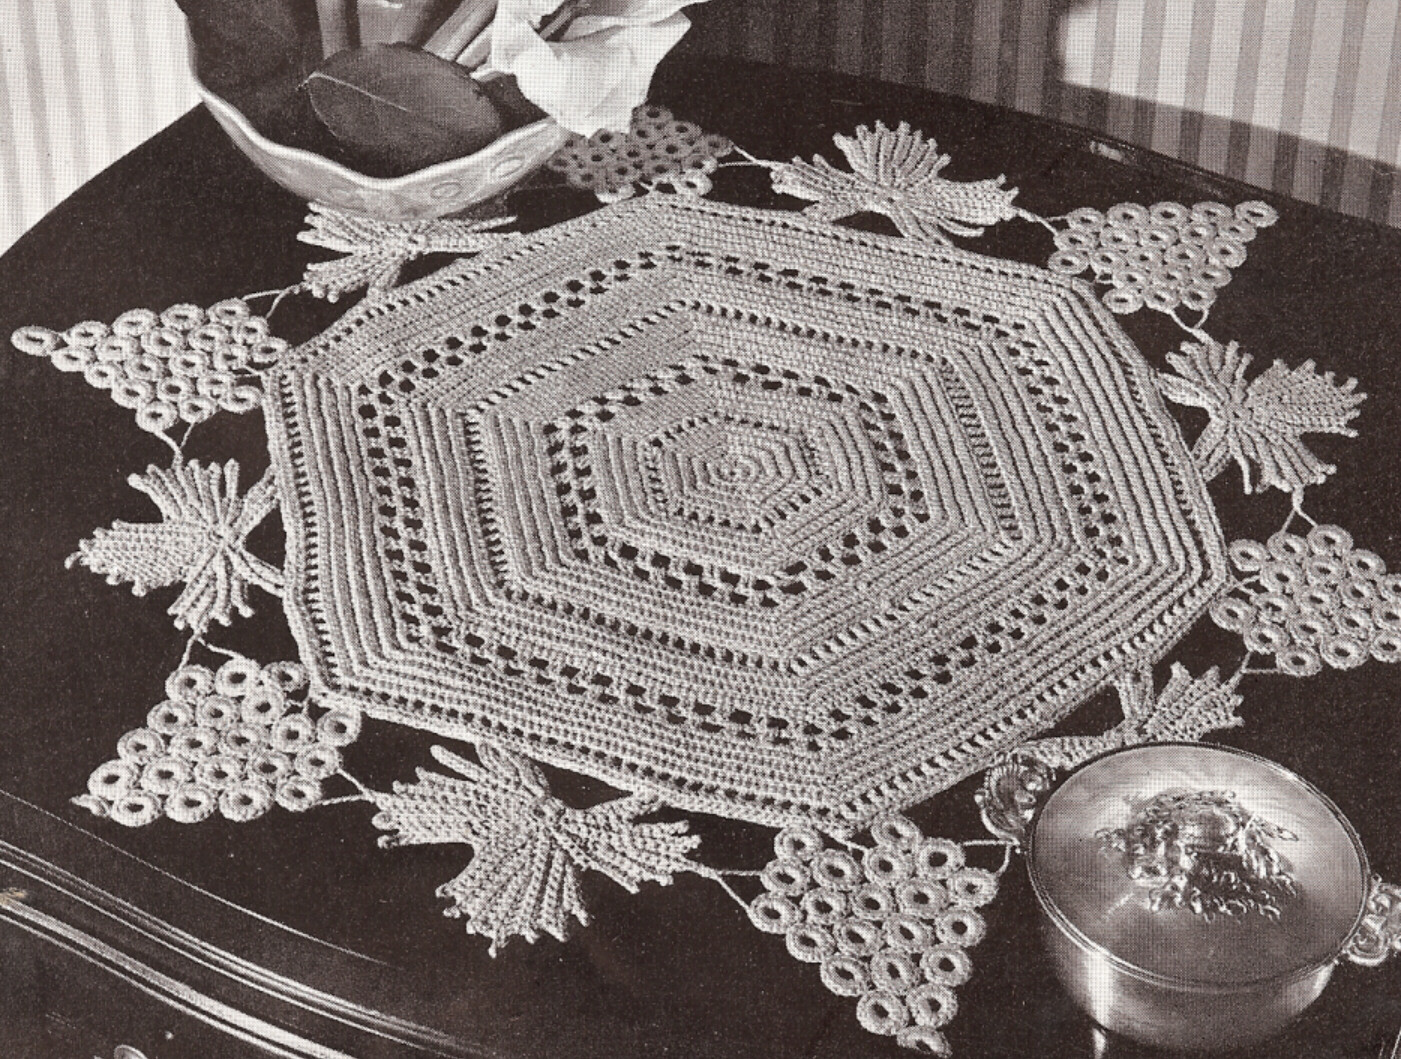 Lovely Vintage Crochet Pattern to Make Irish Grape Leaves Doily Vintage Crochet Patterns Of Attractive 43 Pictures Vintage Crochet Patterns